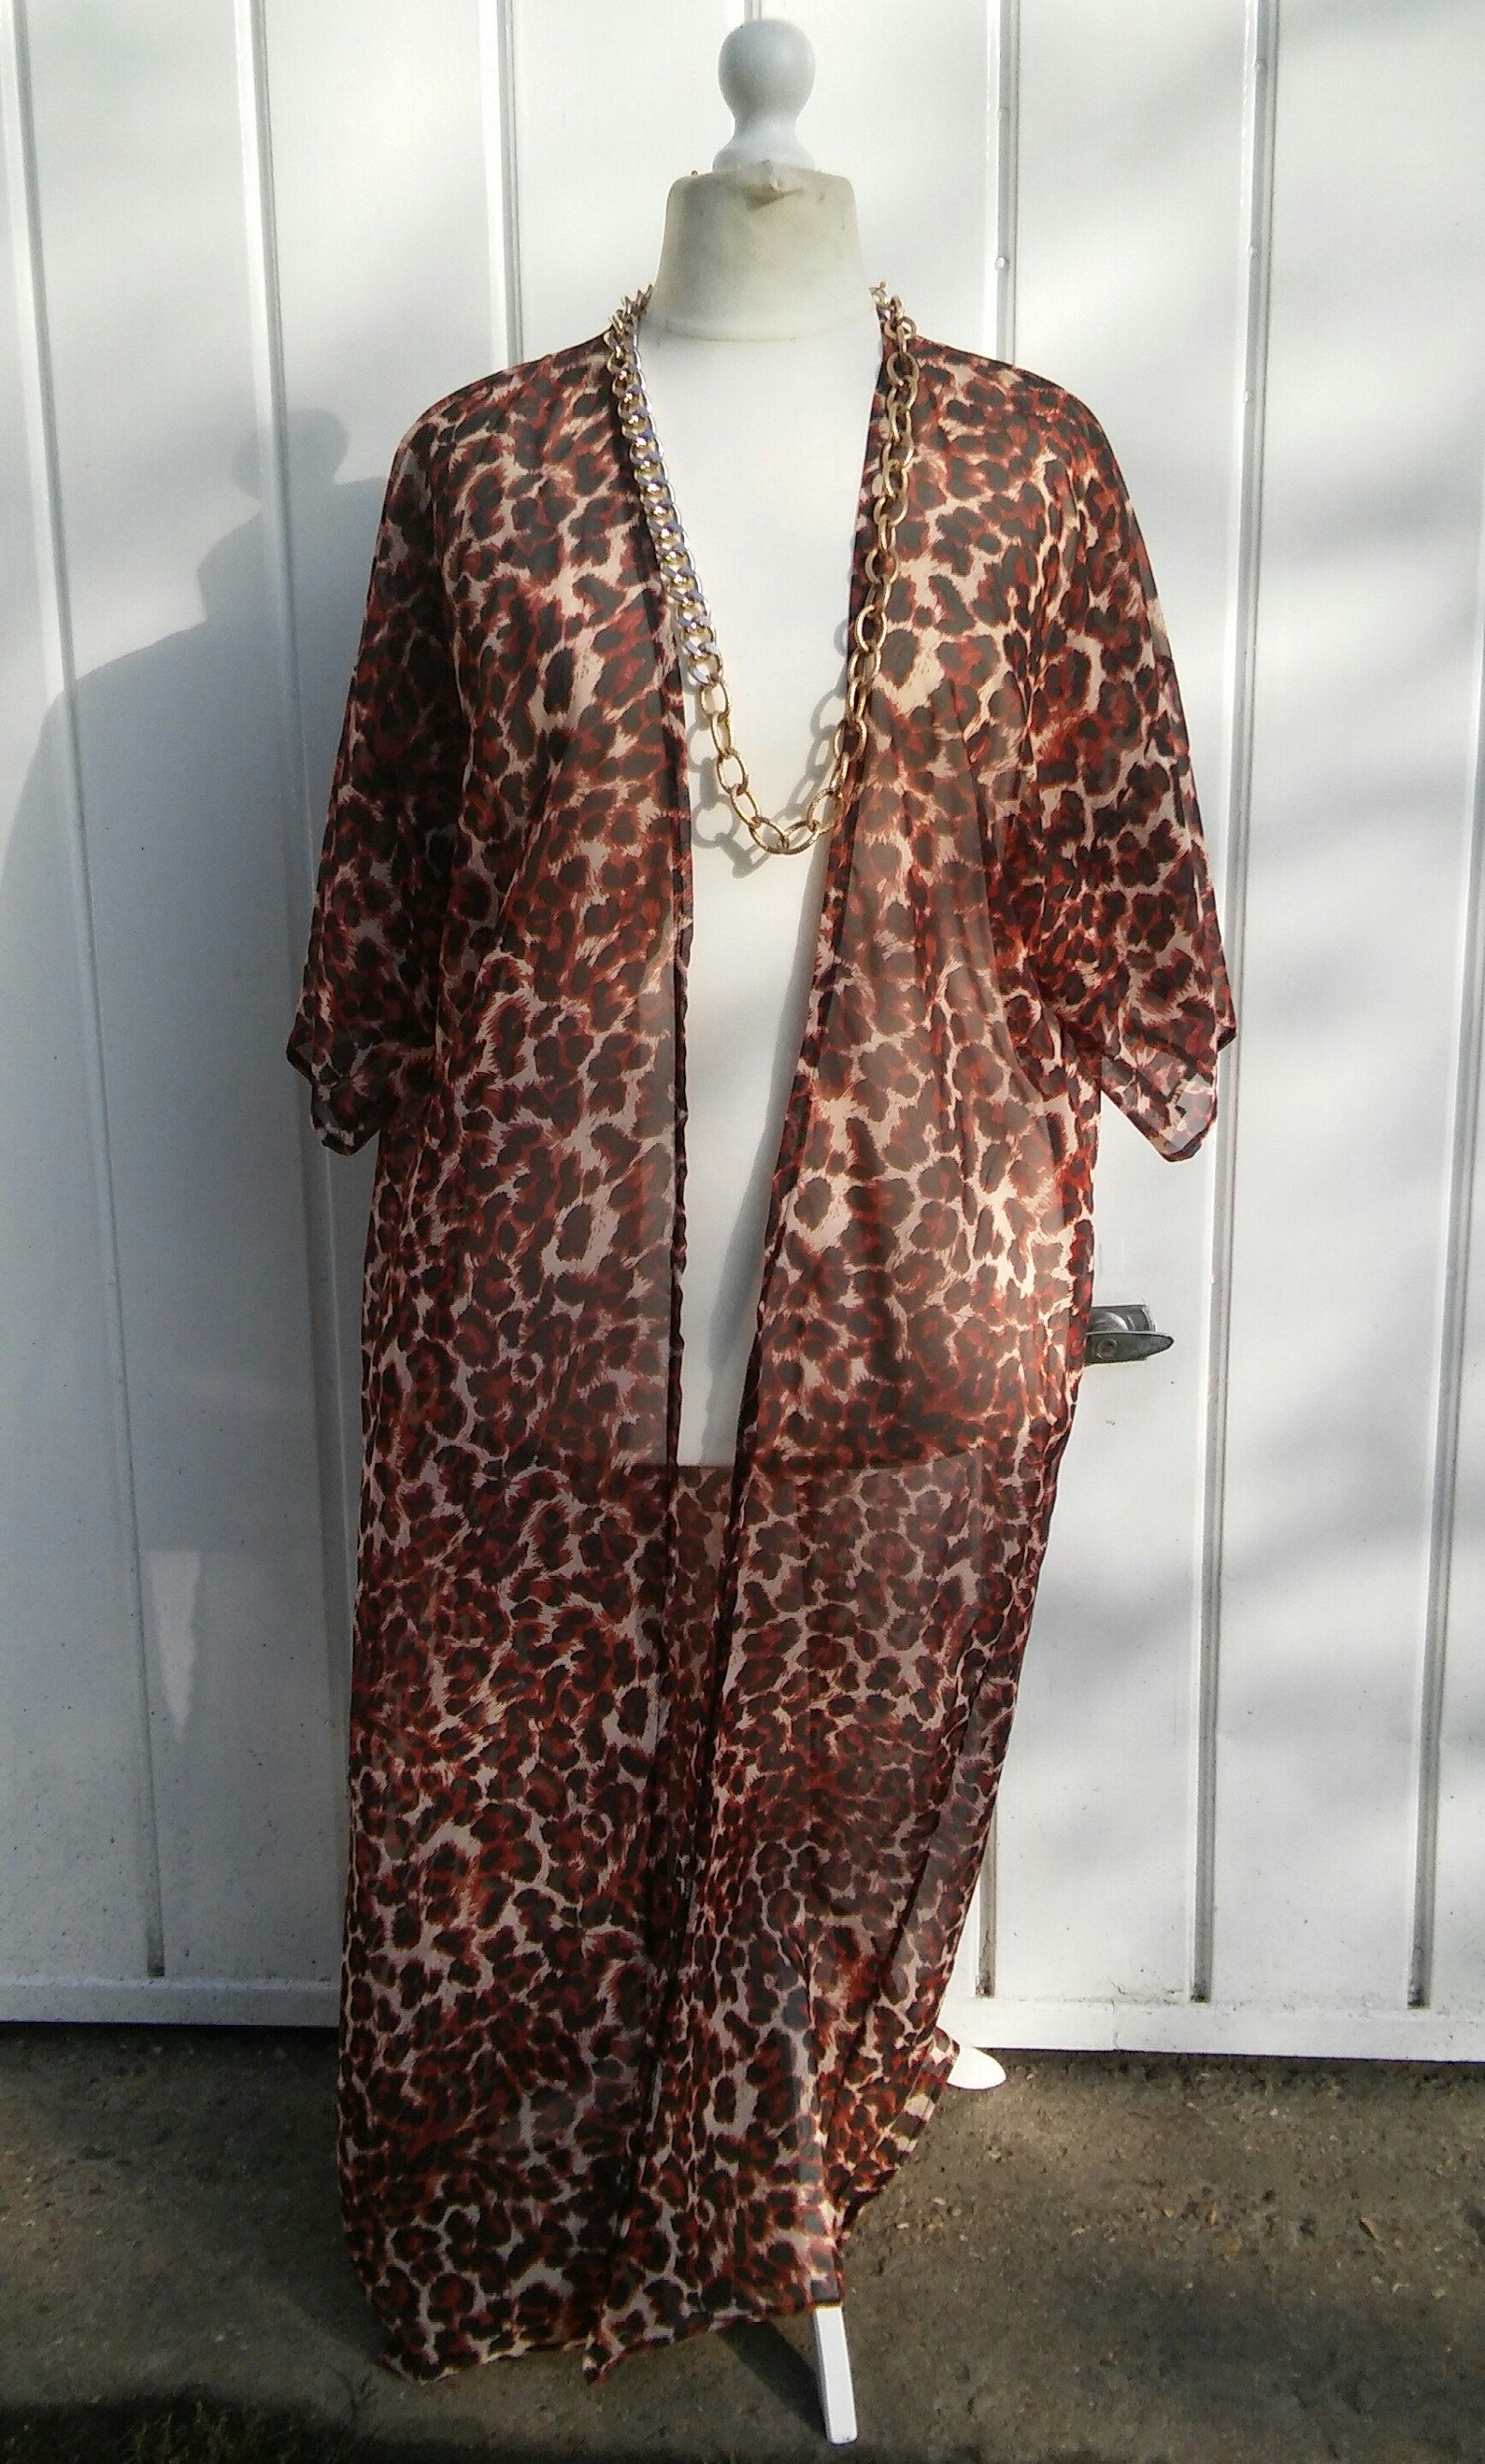 eb5f85953ce8 Plus size Long kimono,Sun cover up, Light jacket, duster brown leopard,  black, pink,white print short sleeves, see through,sheer,sizes 10-28 by ...